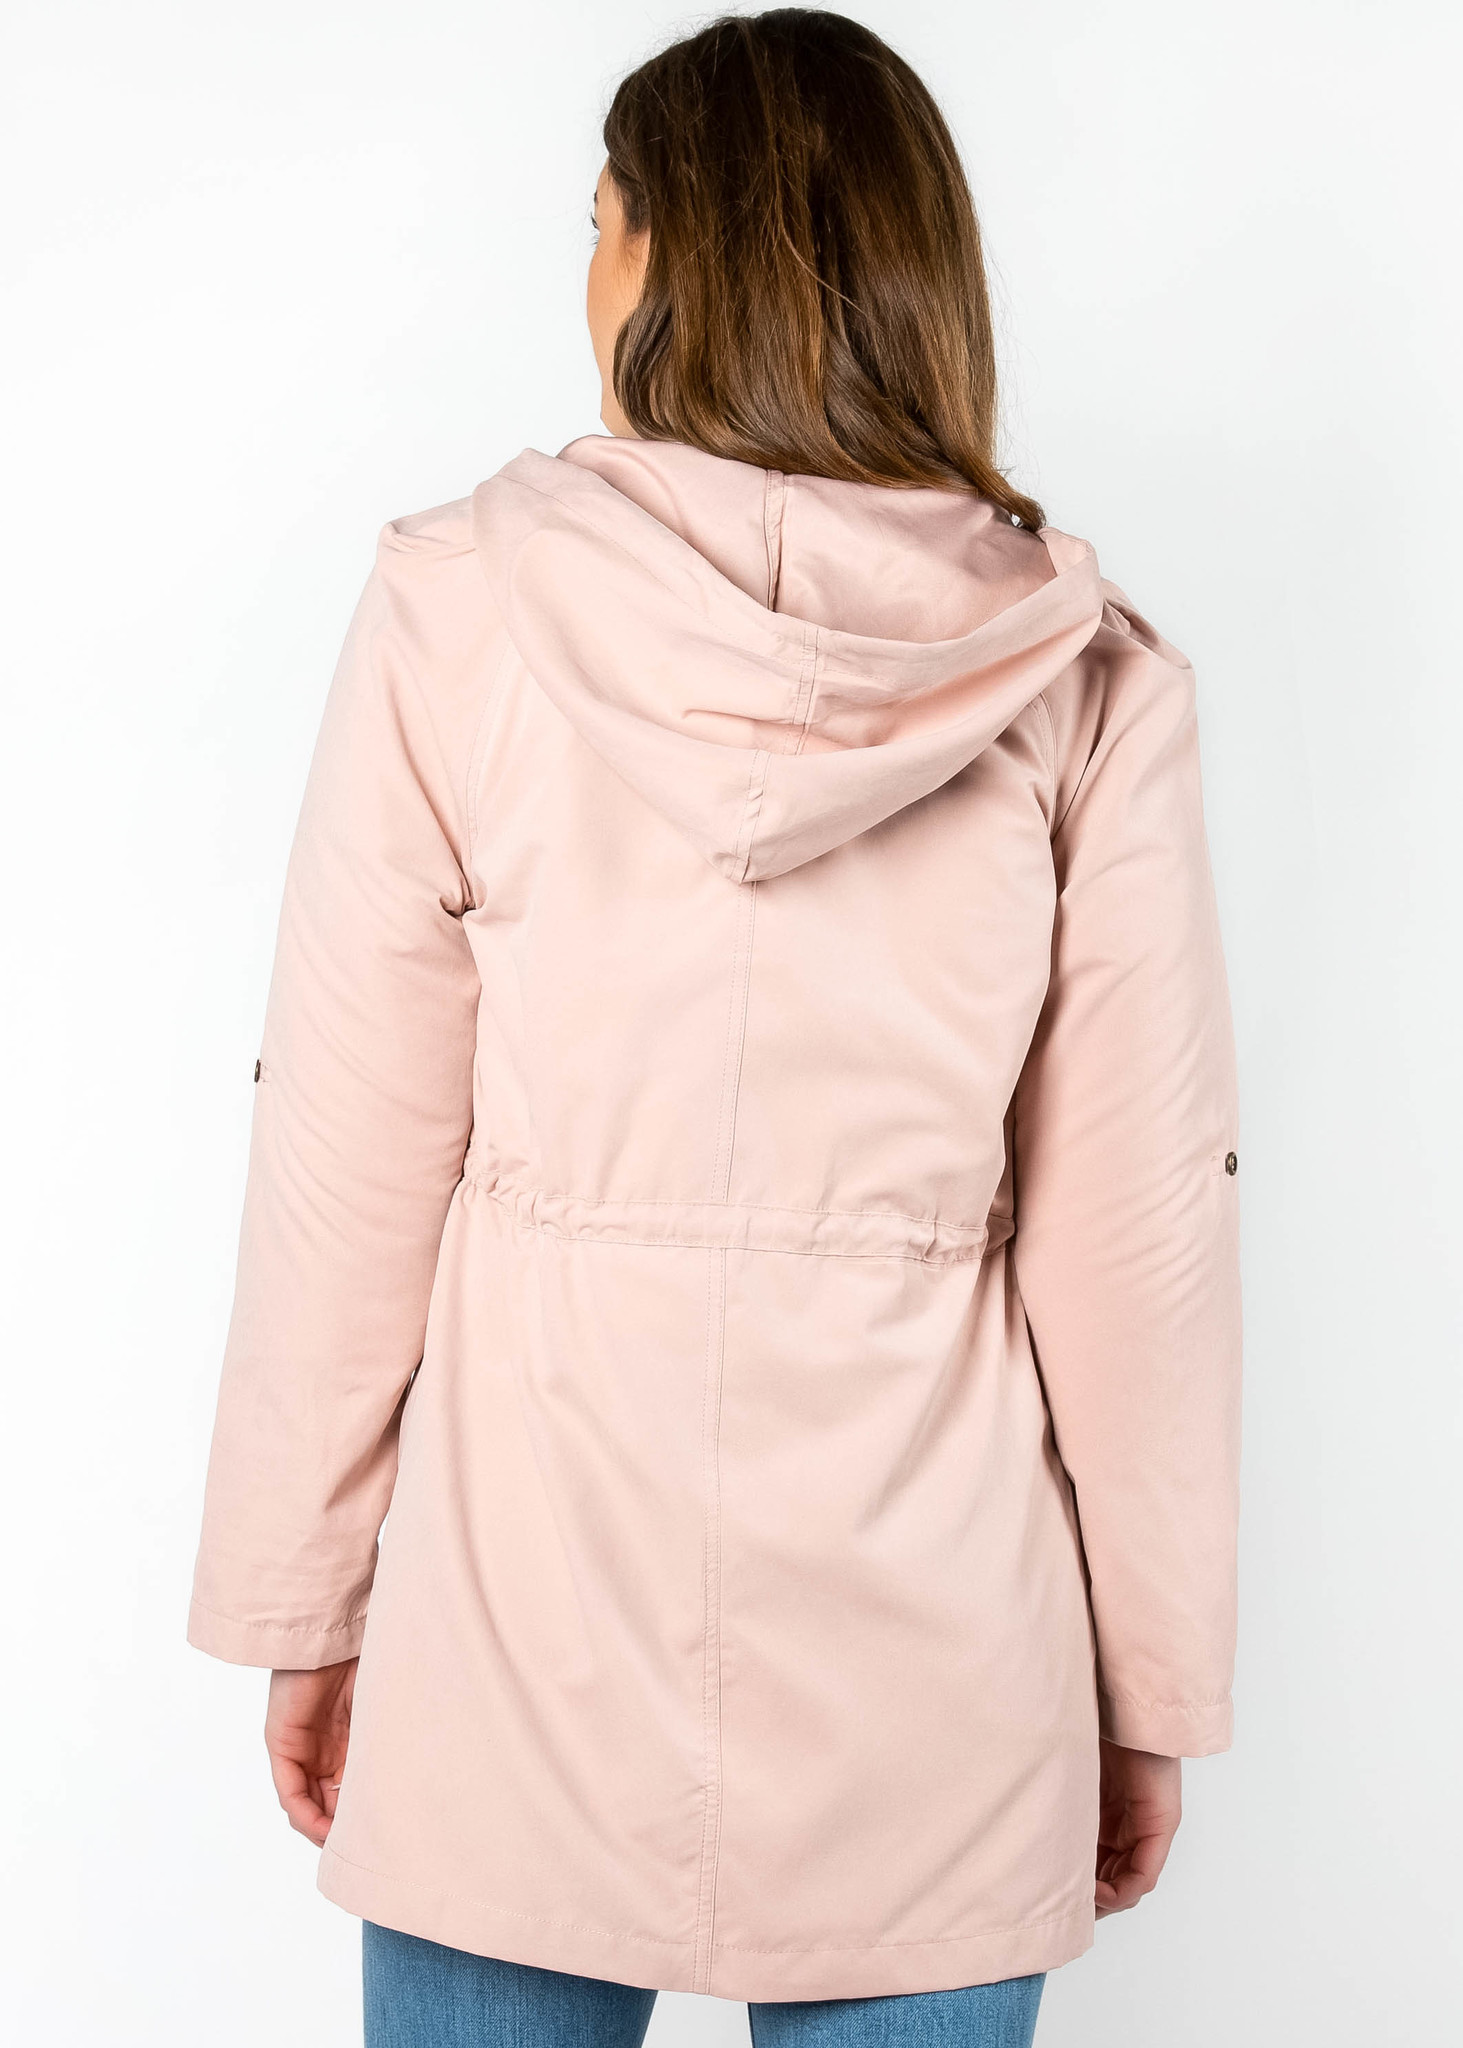 WHOLE TRUTH JACKET - PINK